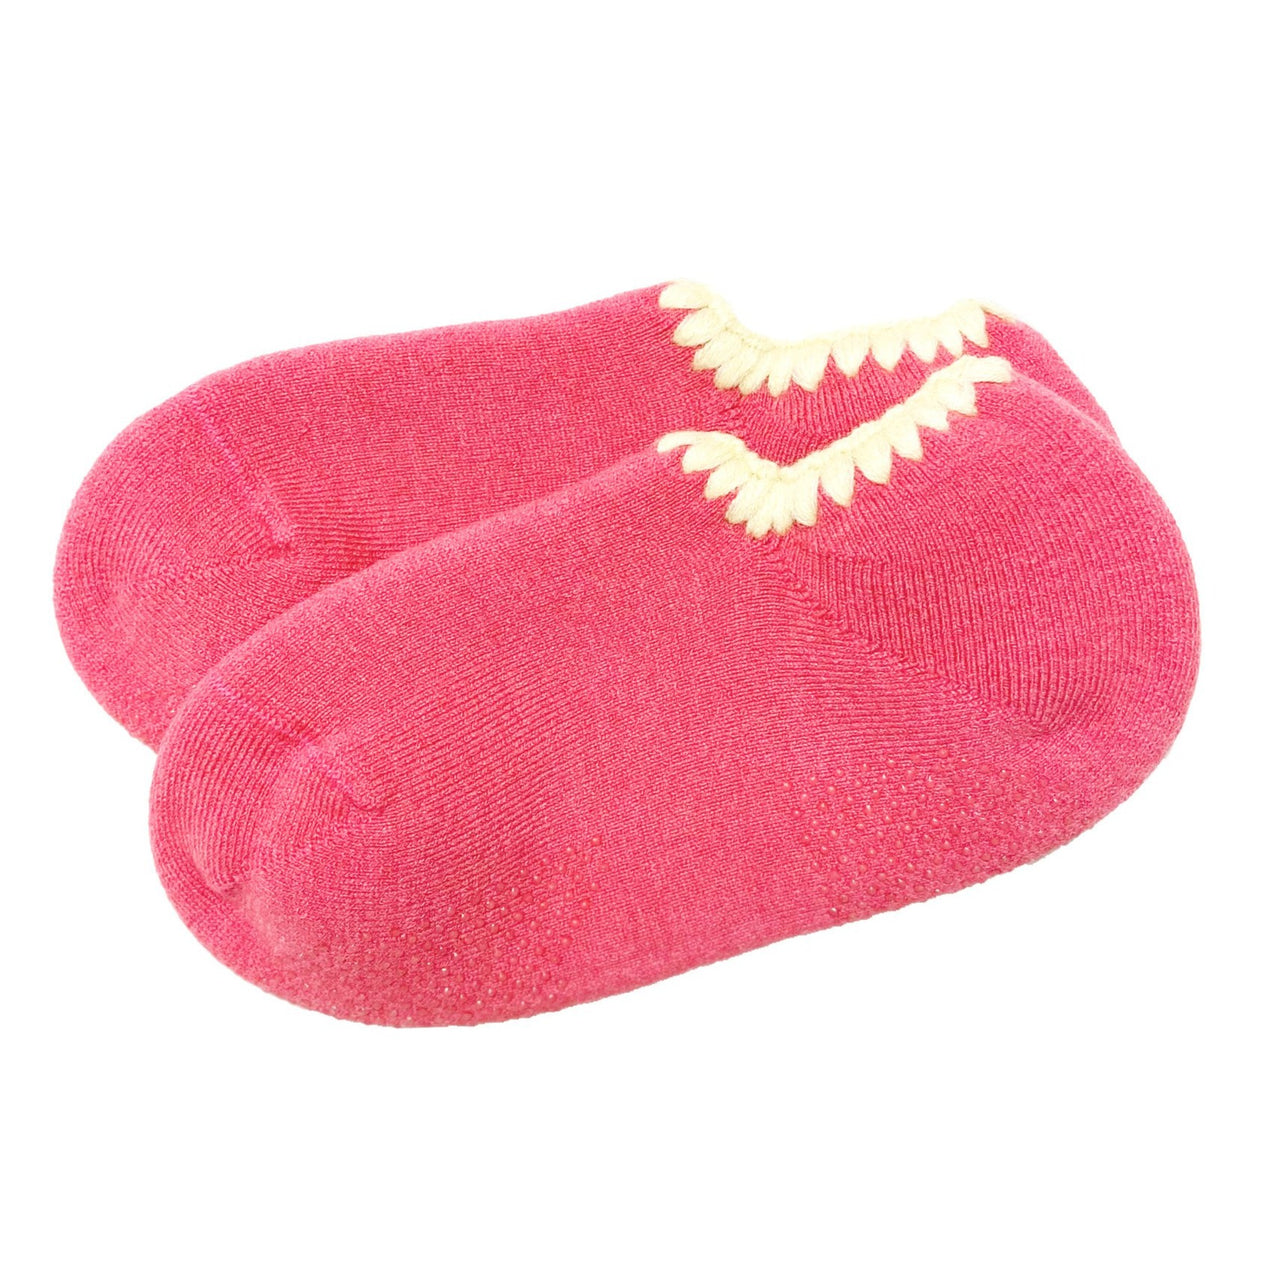 CHERRYSTONE® Slipper Socks | Classic Color with Grips | Pink - CHERRYSTONE